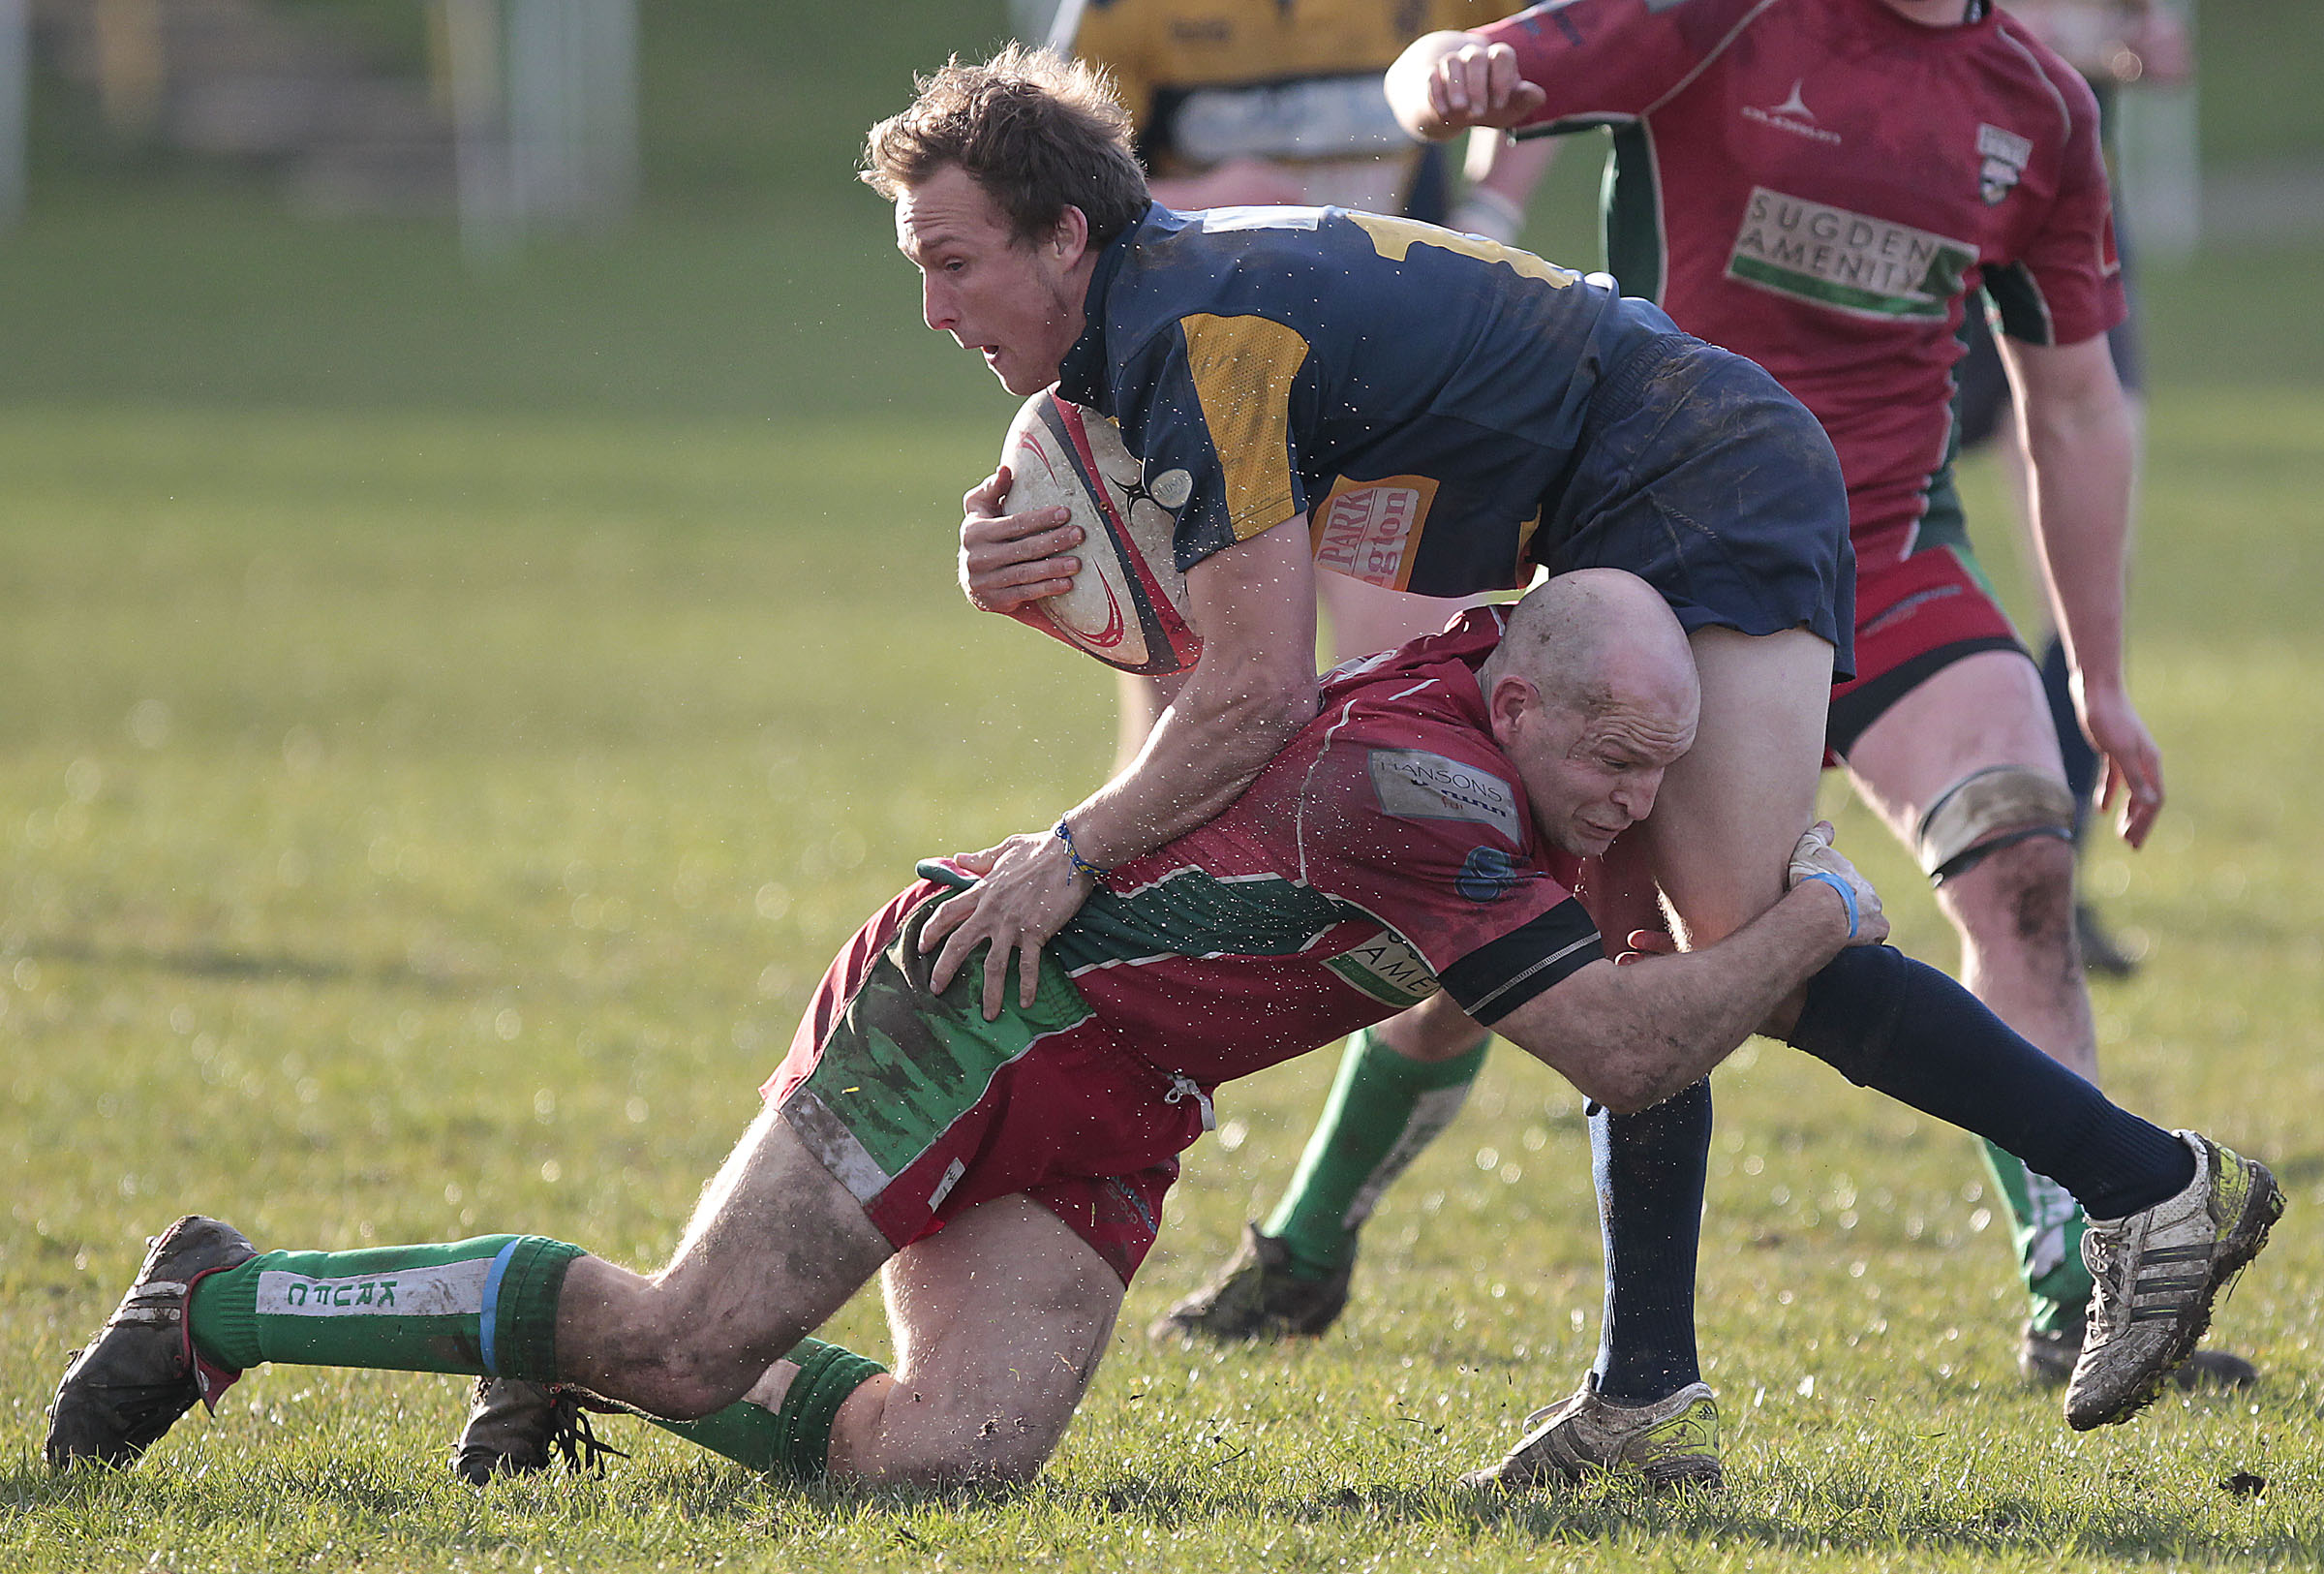 GETTING STUCK IN: Keighley's Dave Pullen makes a tackle against Bridlington. Picture: Charlie Perry